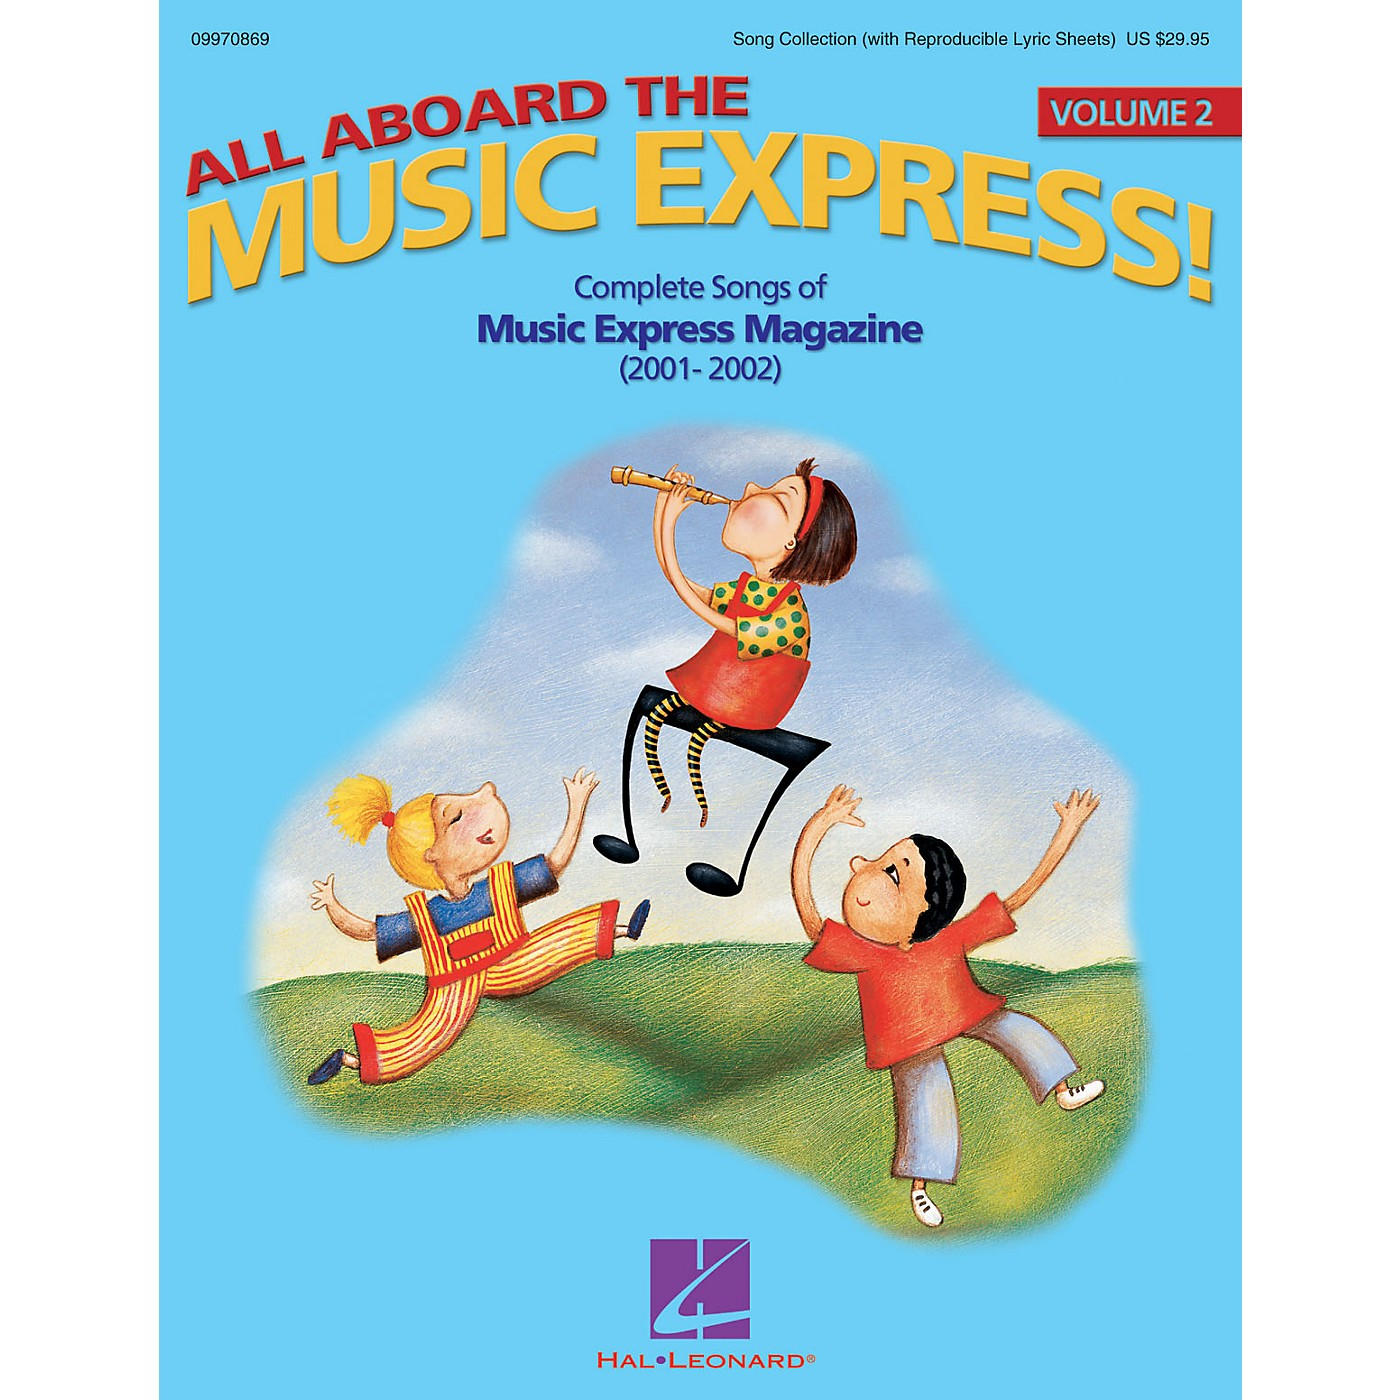 Hal Leonard All Aboard the Music Express Vol. 2 (Complete Songs of Music Express Magazine 2001-2002) COLLECTION thumbnail